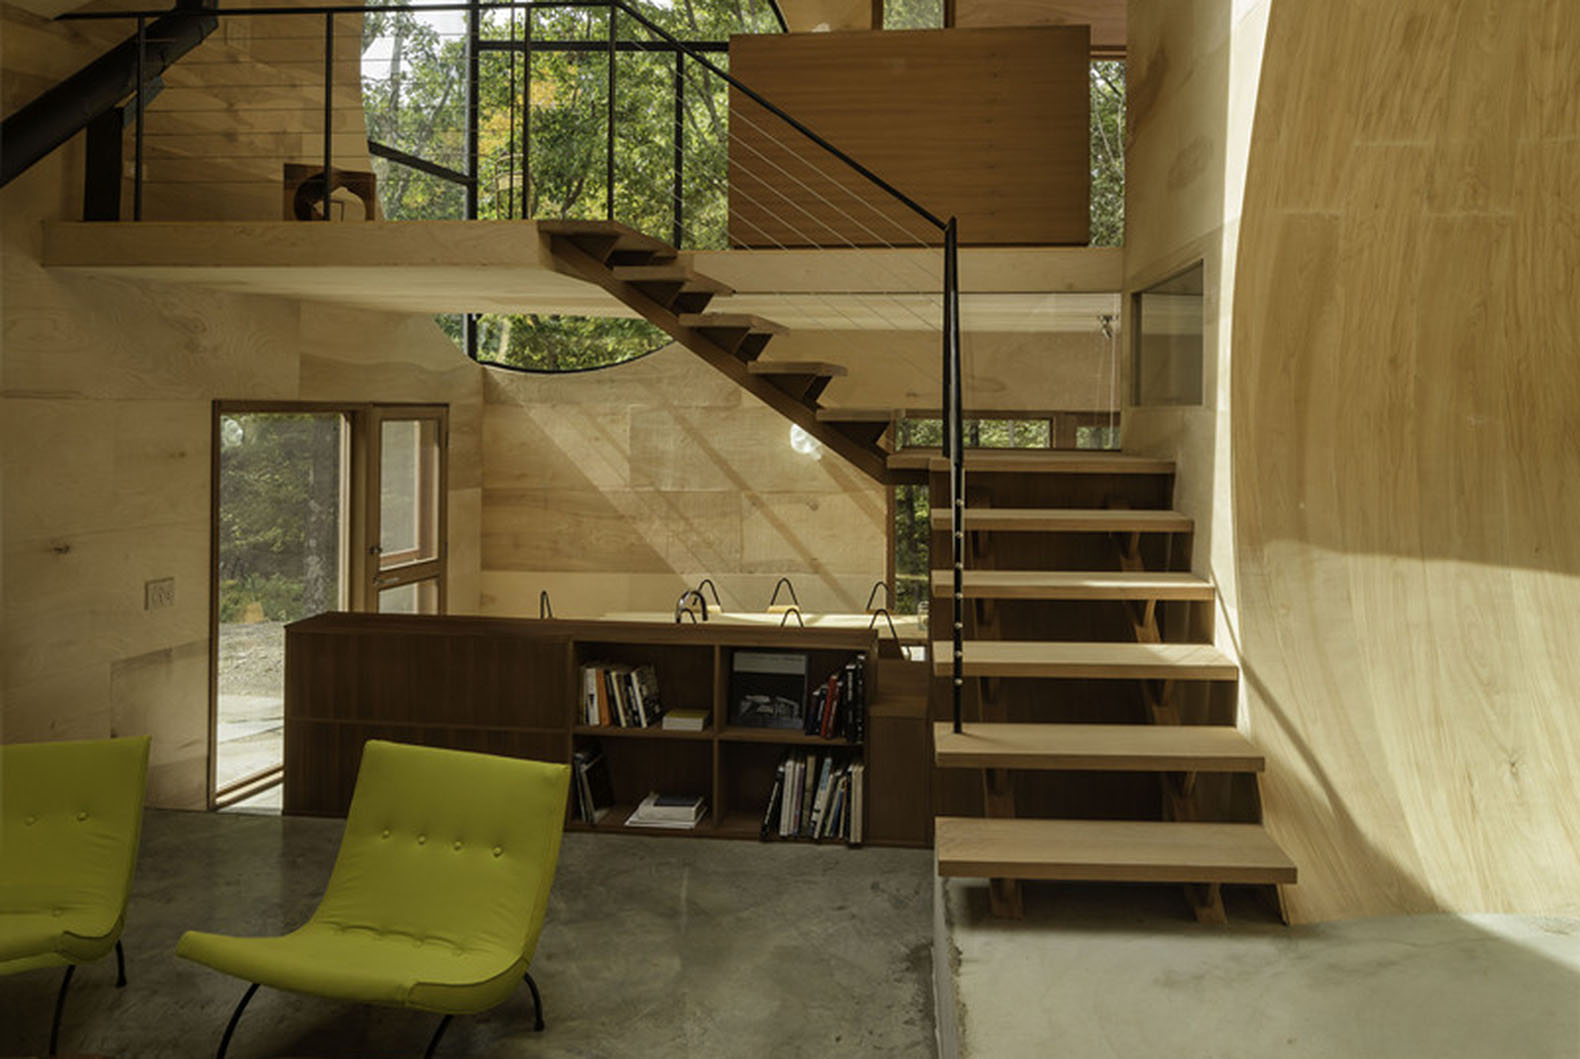 Ex Of In House, 3D Printing, Locally Sourced Materials, Steven Holl  Architects,